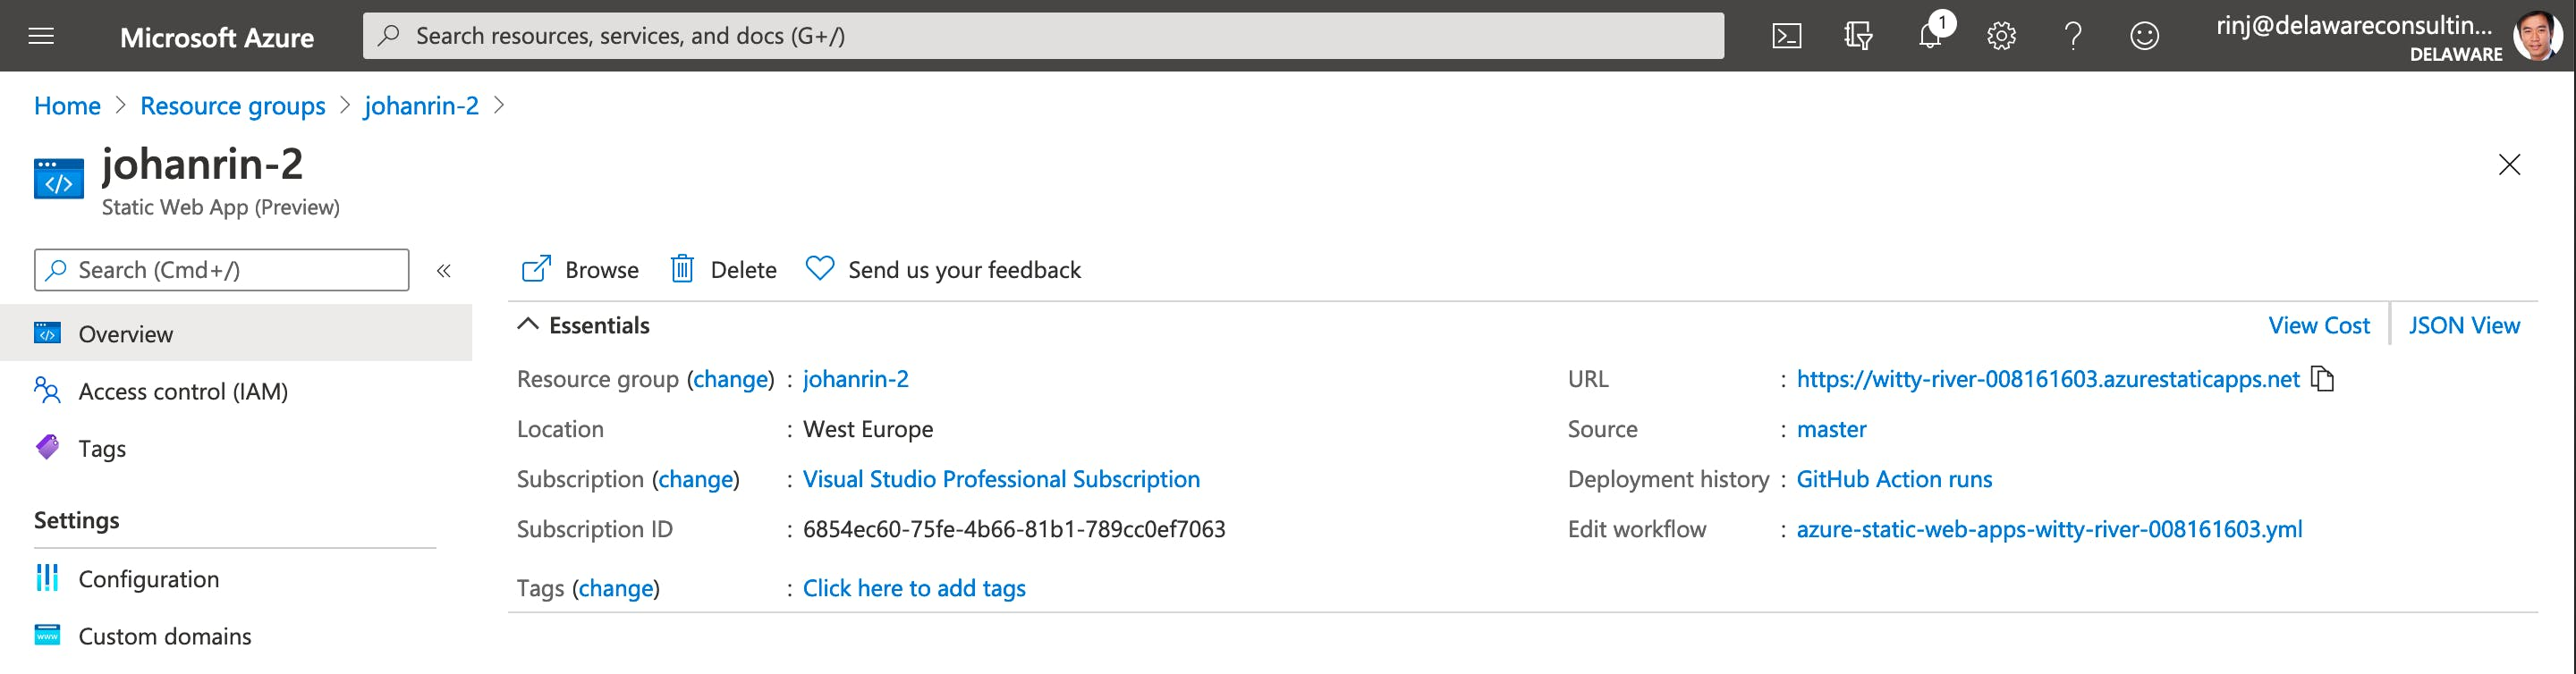 Find your website URL in Azure